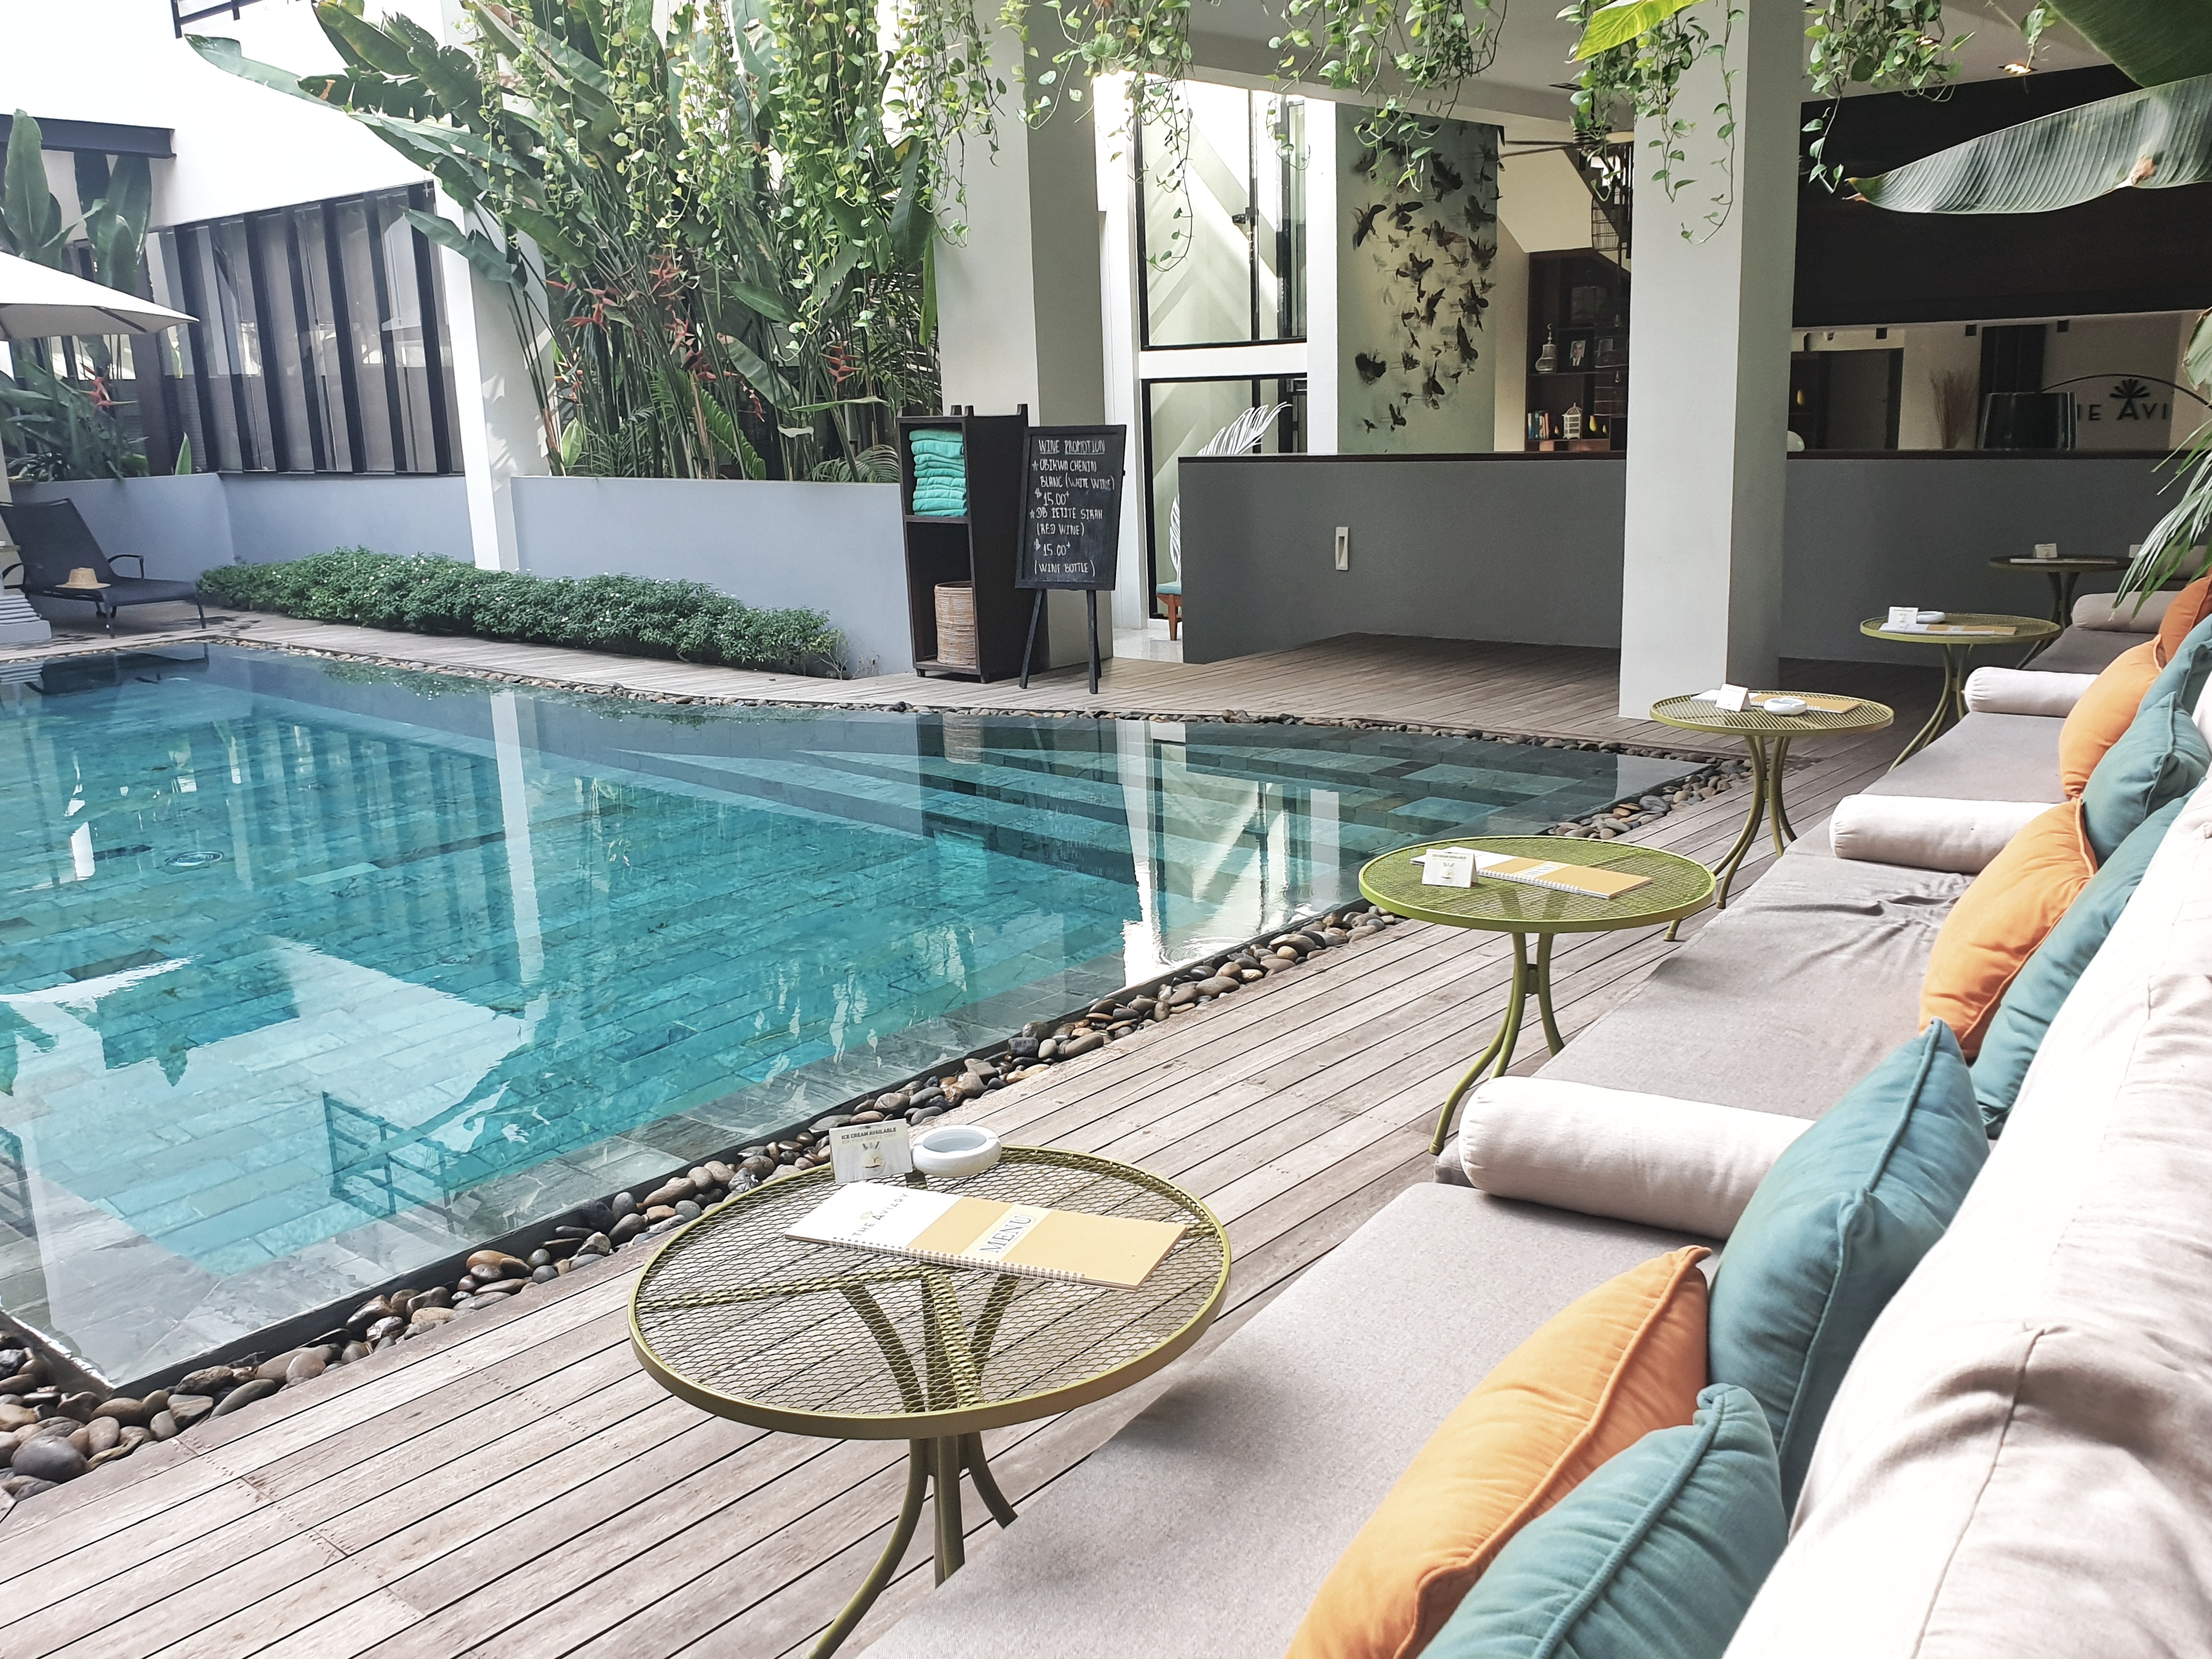 The Aviary Hotel, Siem Reap, Cambodia